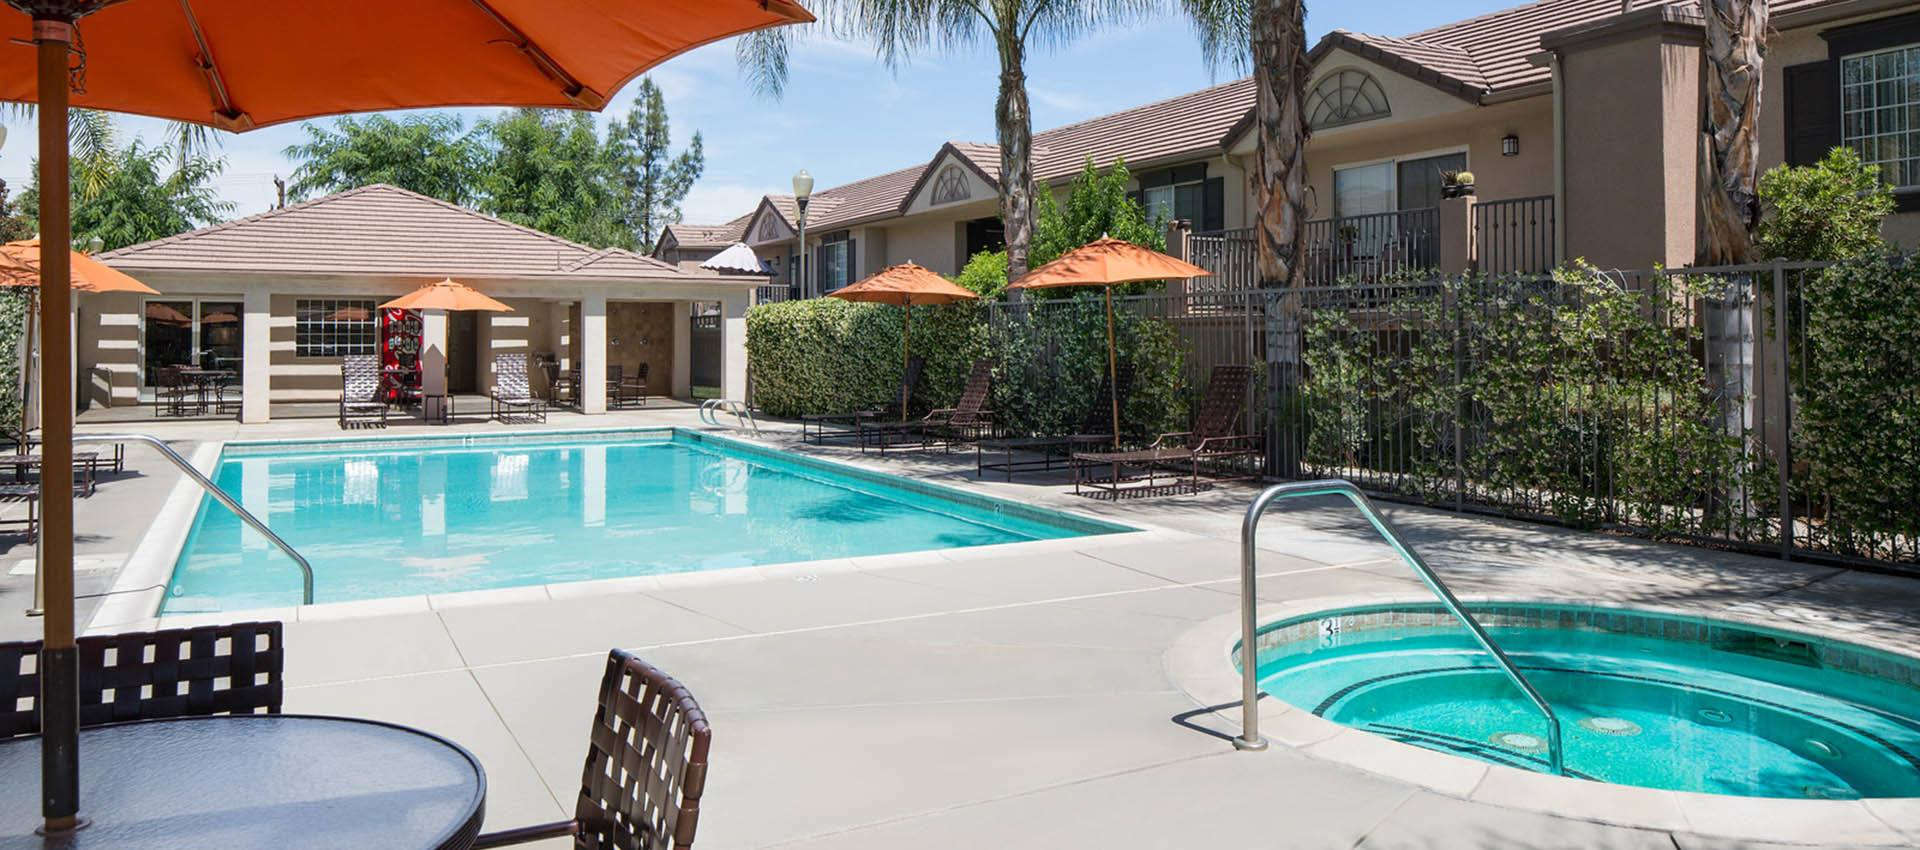 Resort Style Spa And Pool at Cypress Villas Apartment Homes in Redlands, CA